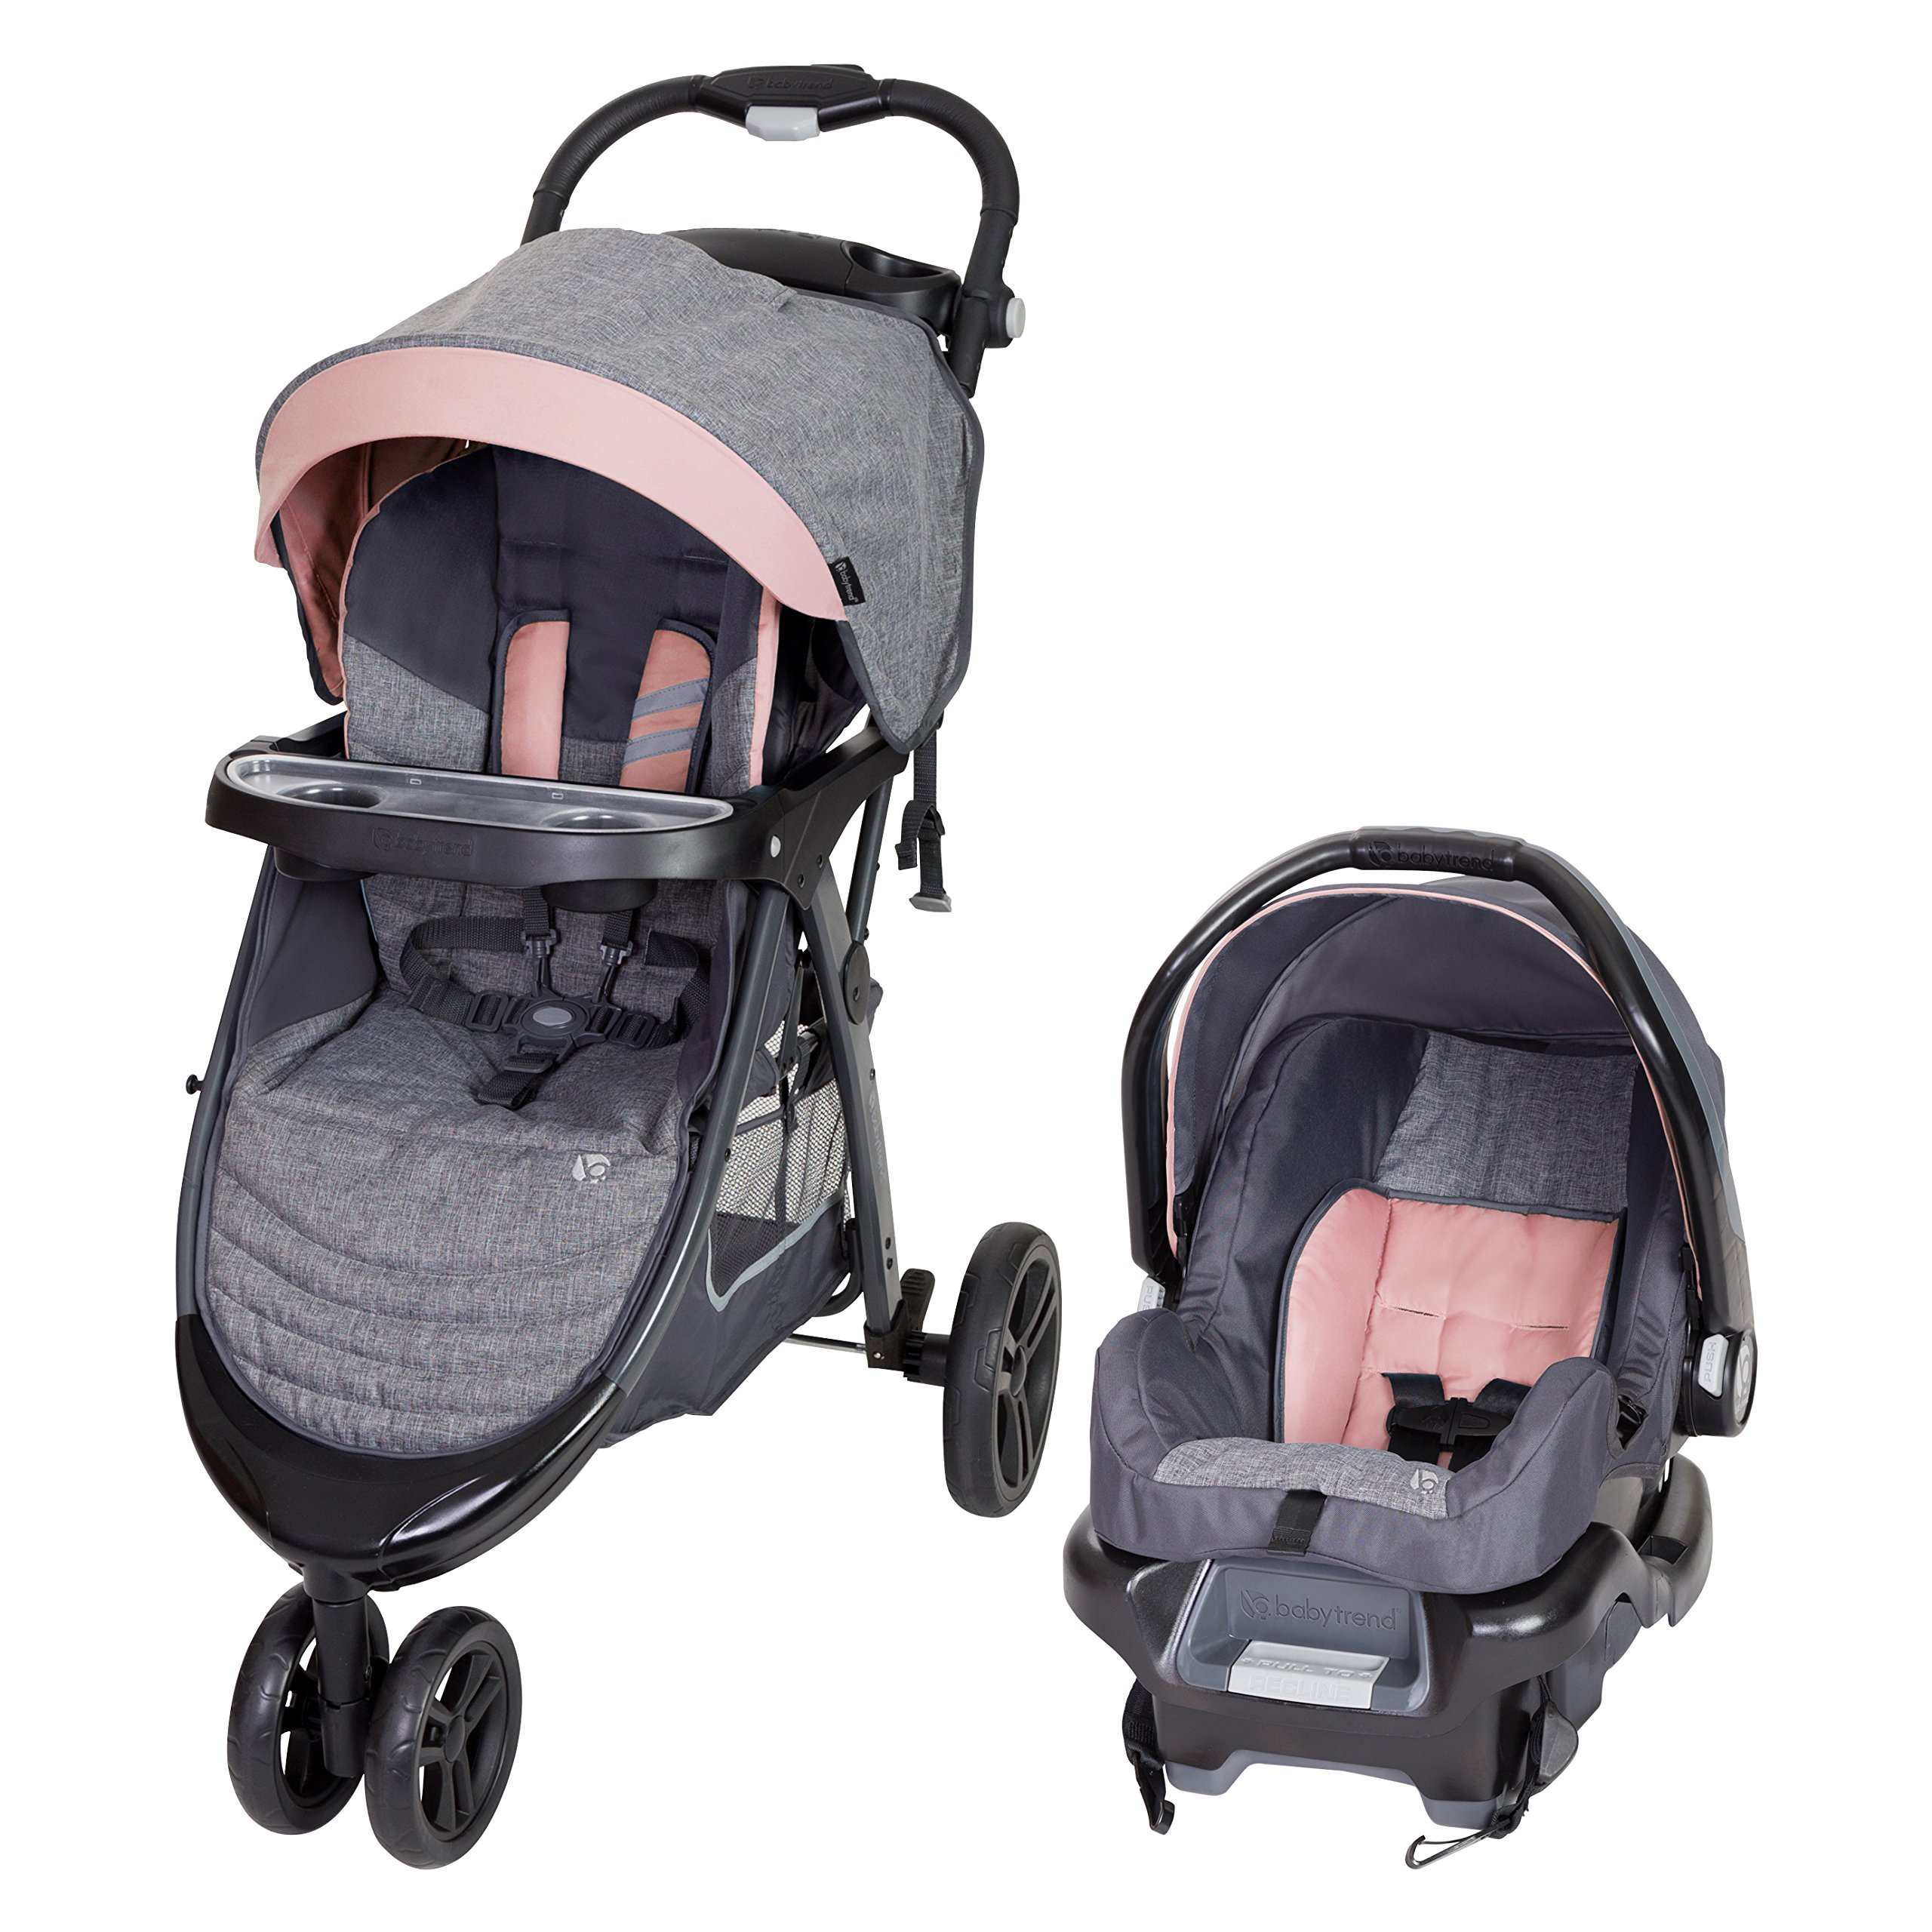 Baby Trend Skyline 35 Travel System, Starlight Pink